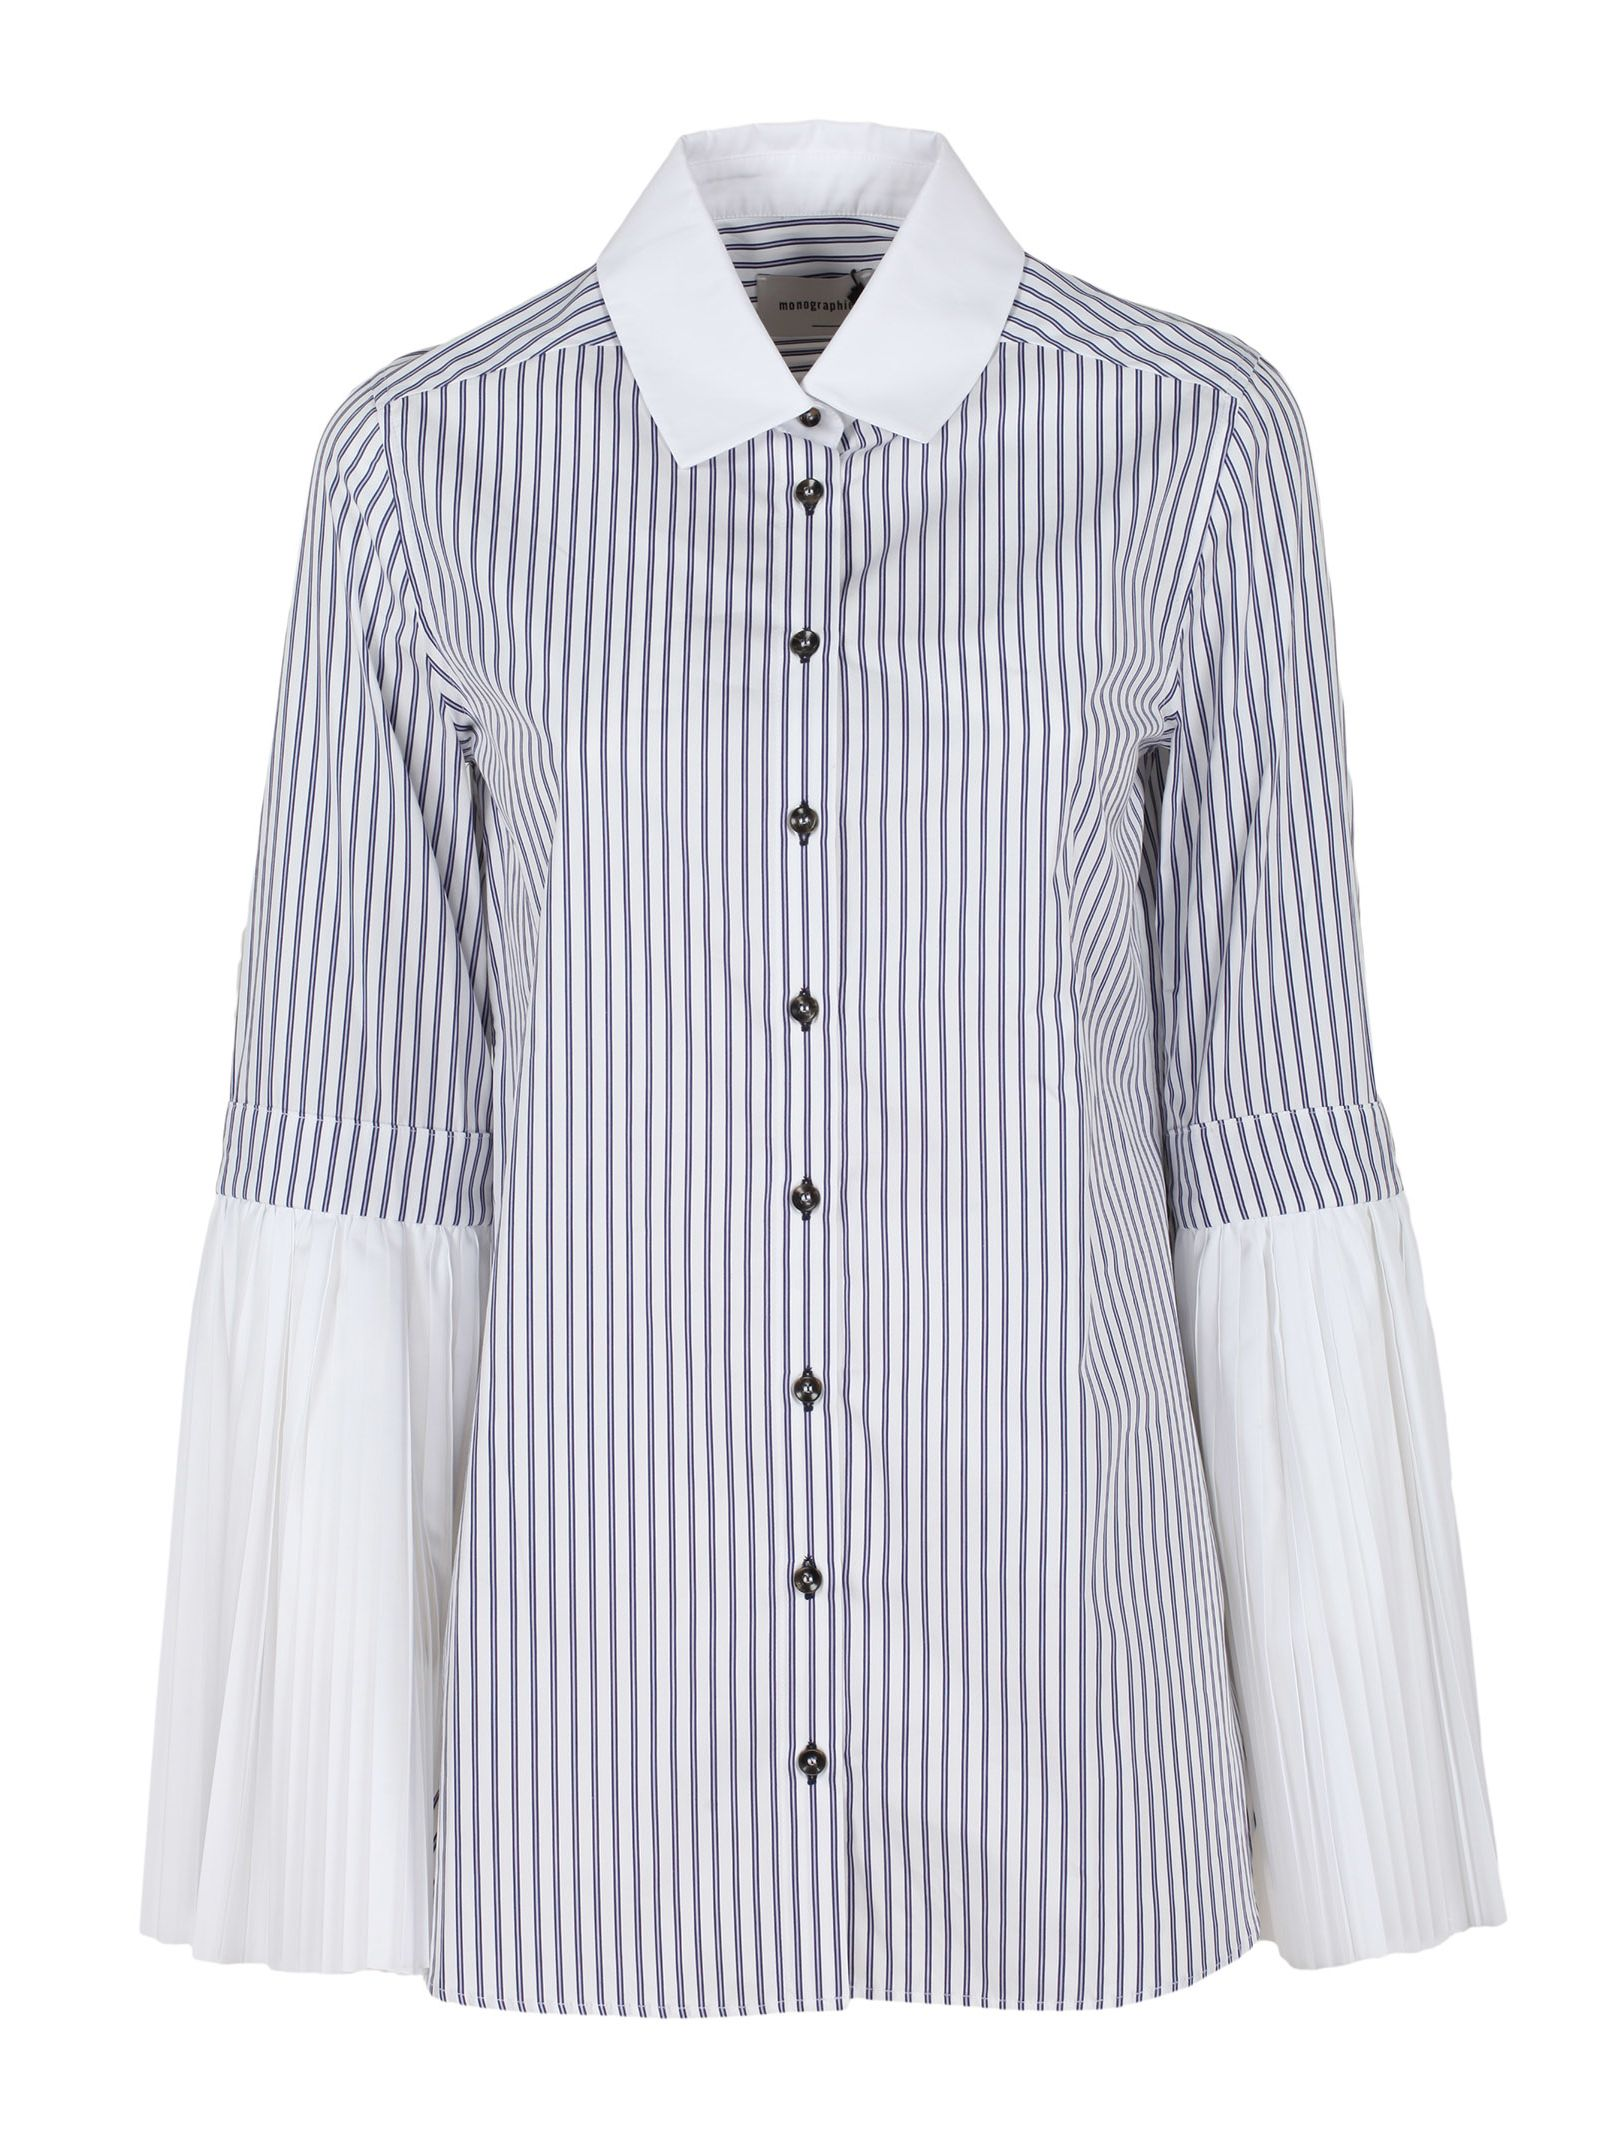 MONOGRAPHIE Pleated Shirt in Blue & White Stripes